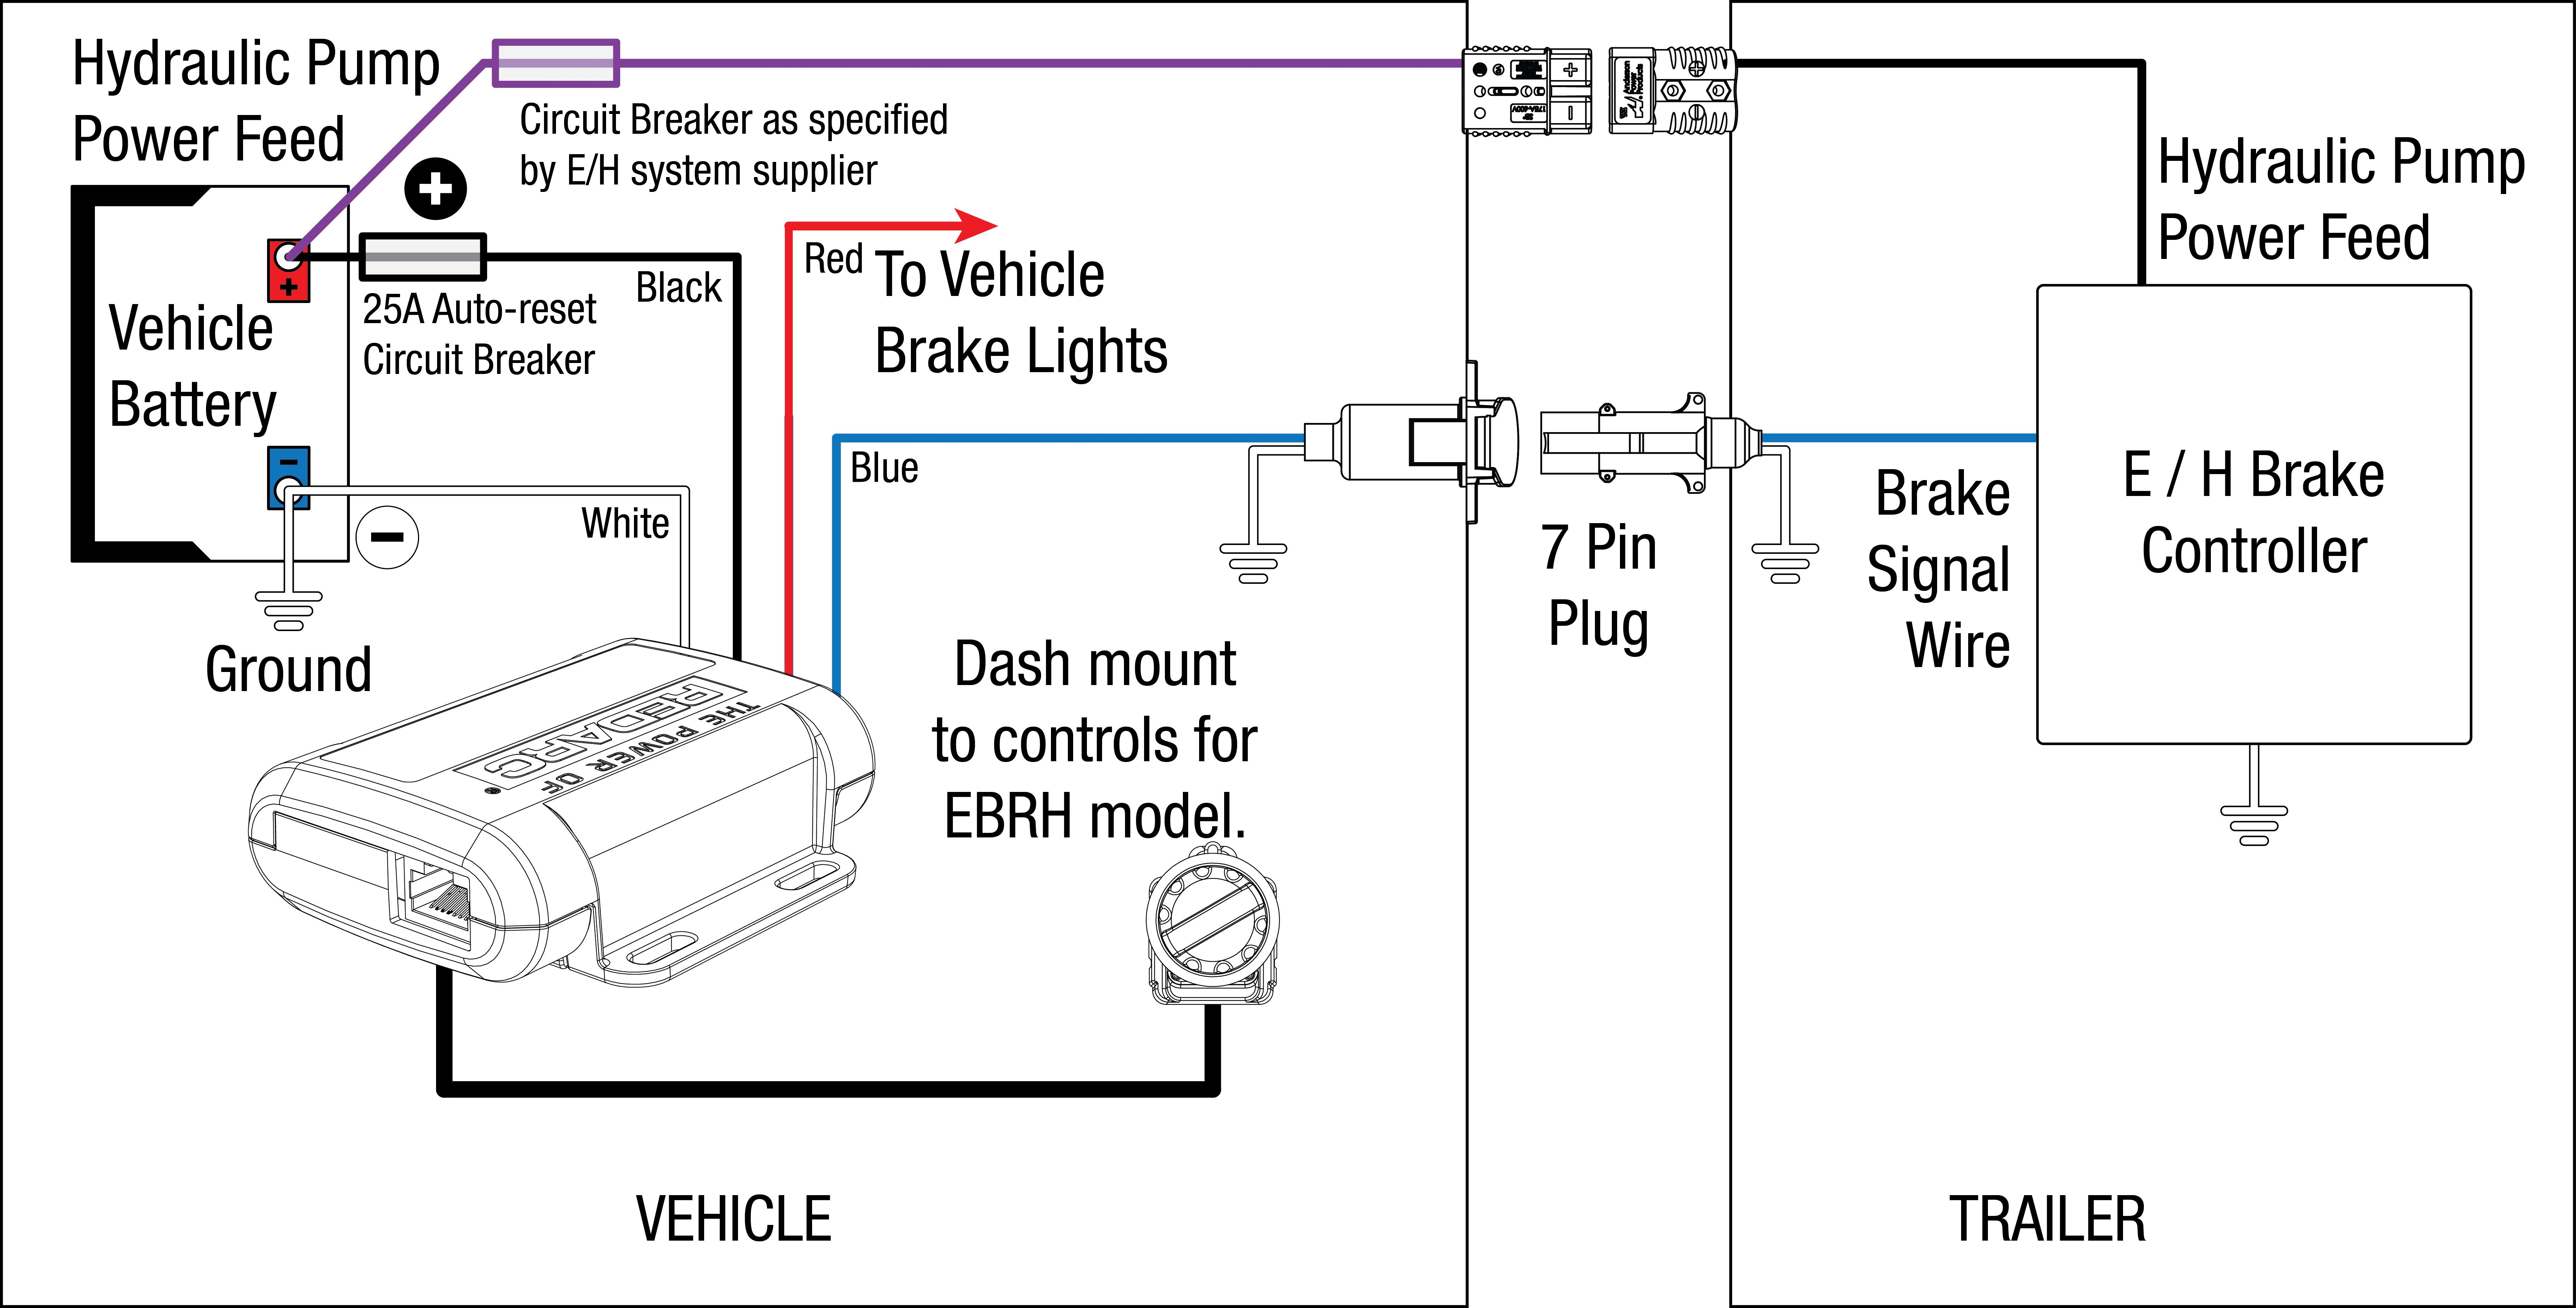 Brake Lights Wiring Diagram Luxury 3 Wire Tail Light Wiring Diagram Diagram Of Brake Lights Wiring Diagram